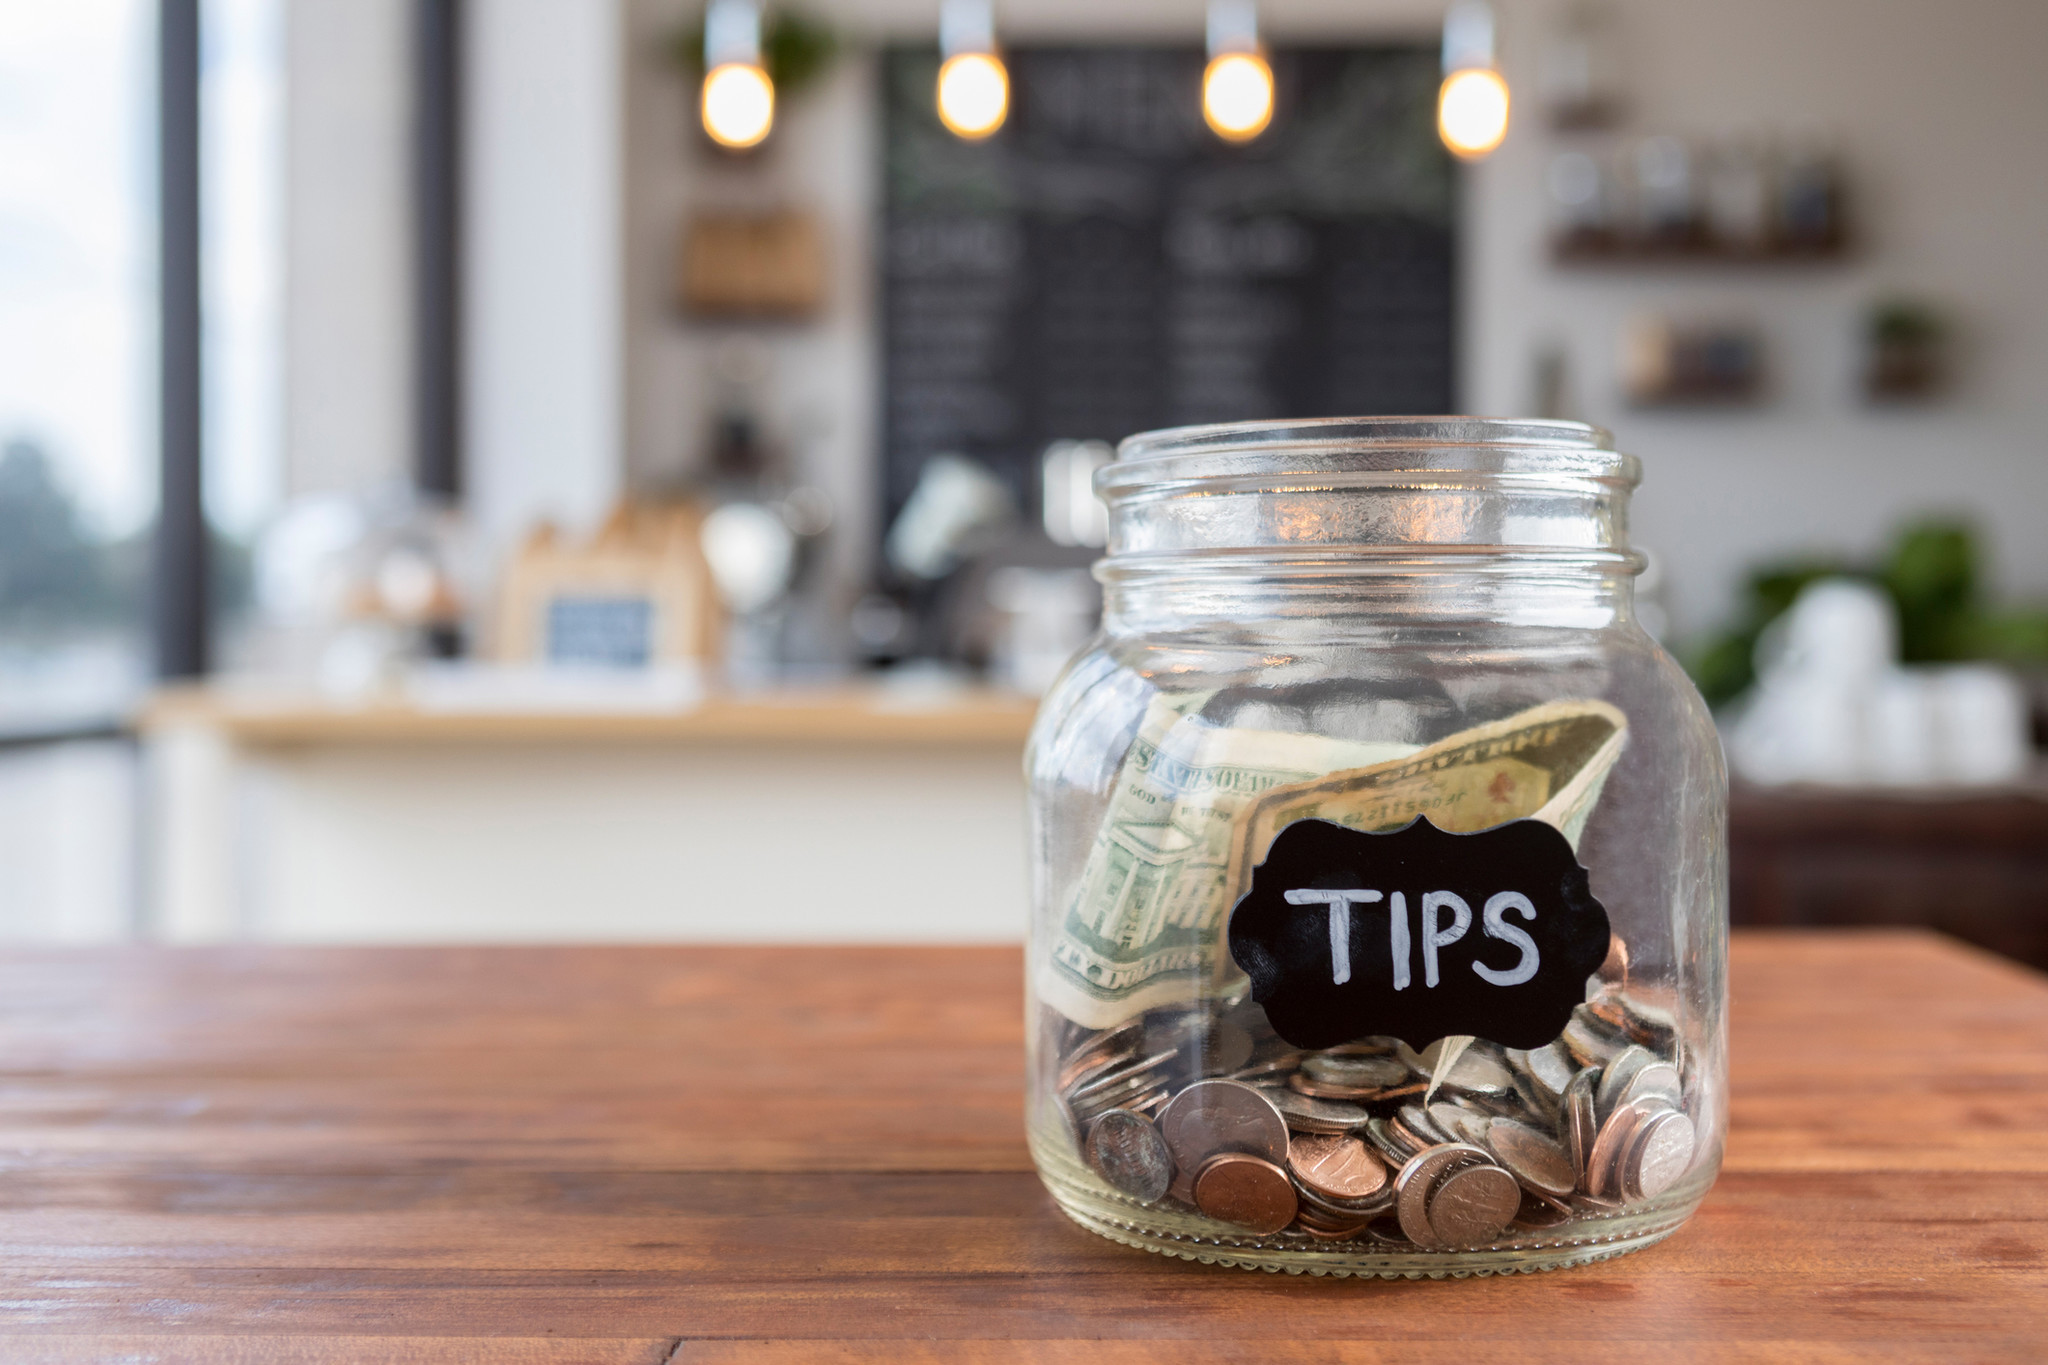 Readers weigh in on tipping for takeout, delivery and more | Doreen's Deals